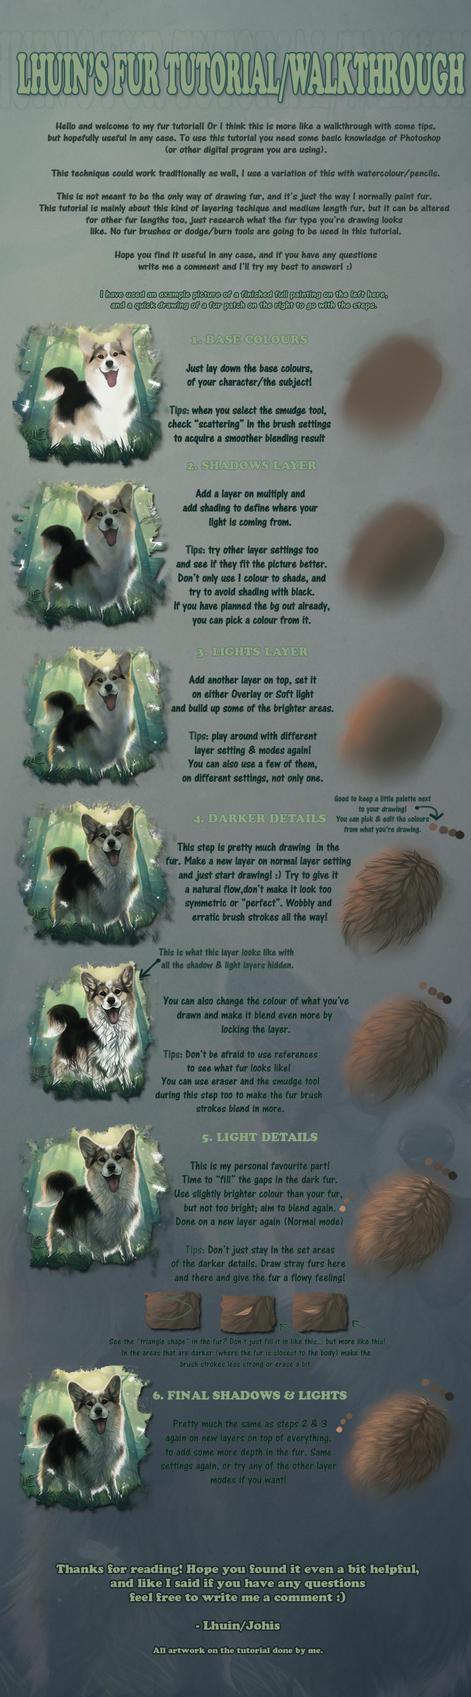 Fur tutorial/walkthrough (mainly longer fur) by Lhuin